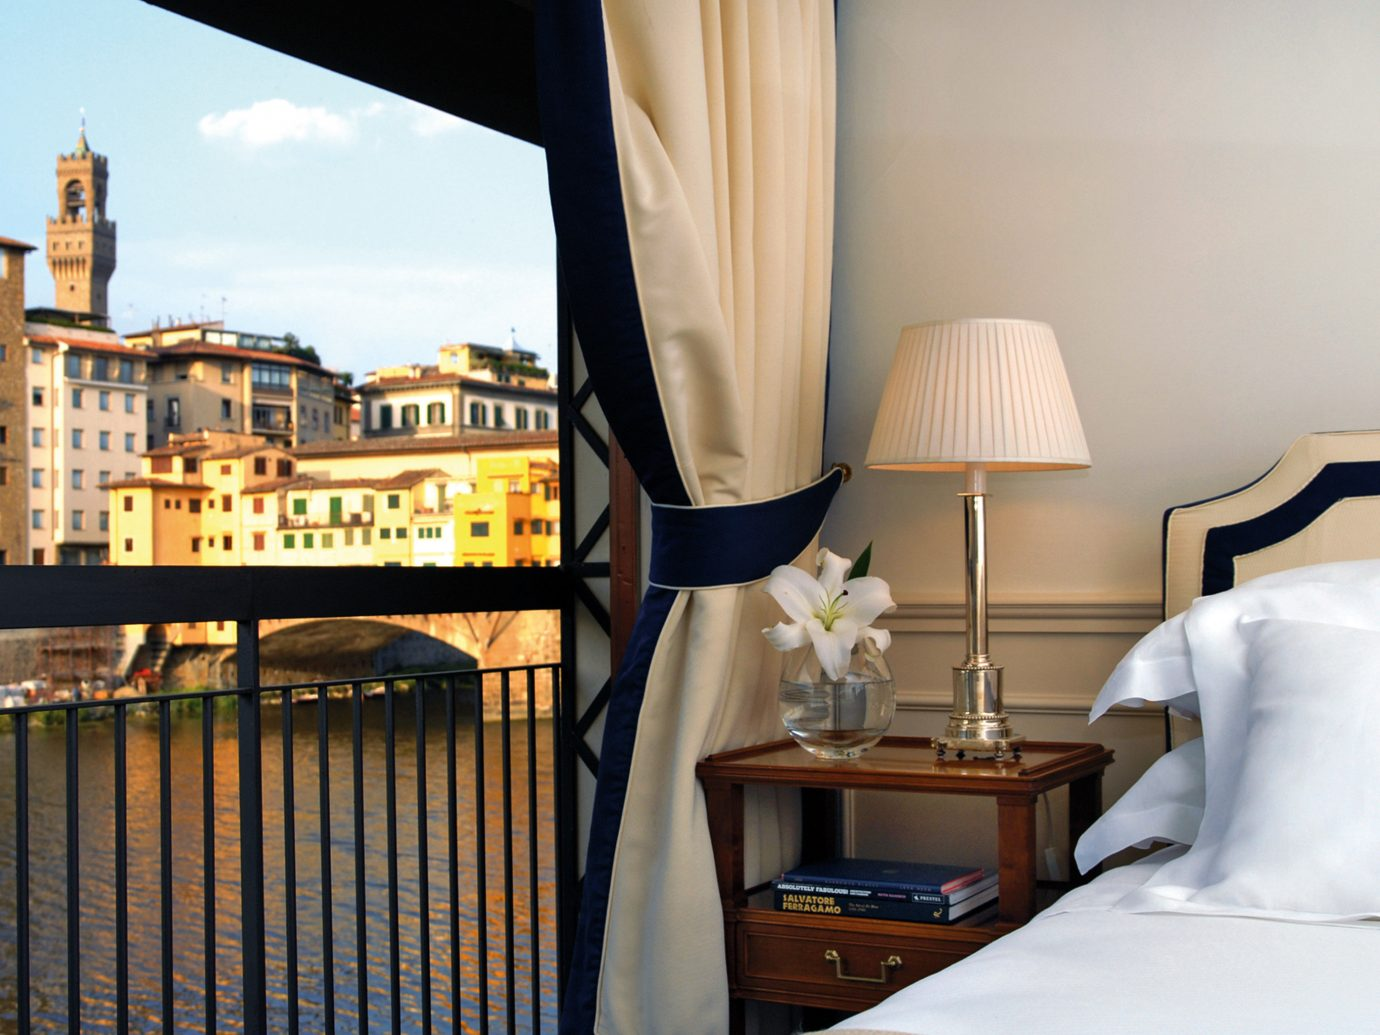 Balcony Bedroom City Florence Hotels Italy Modern River Scenic views Waterfront indoor room house home interior design estate hotel window covering apartment cottage furniture